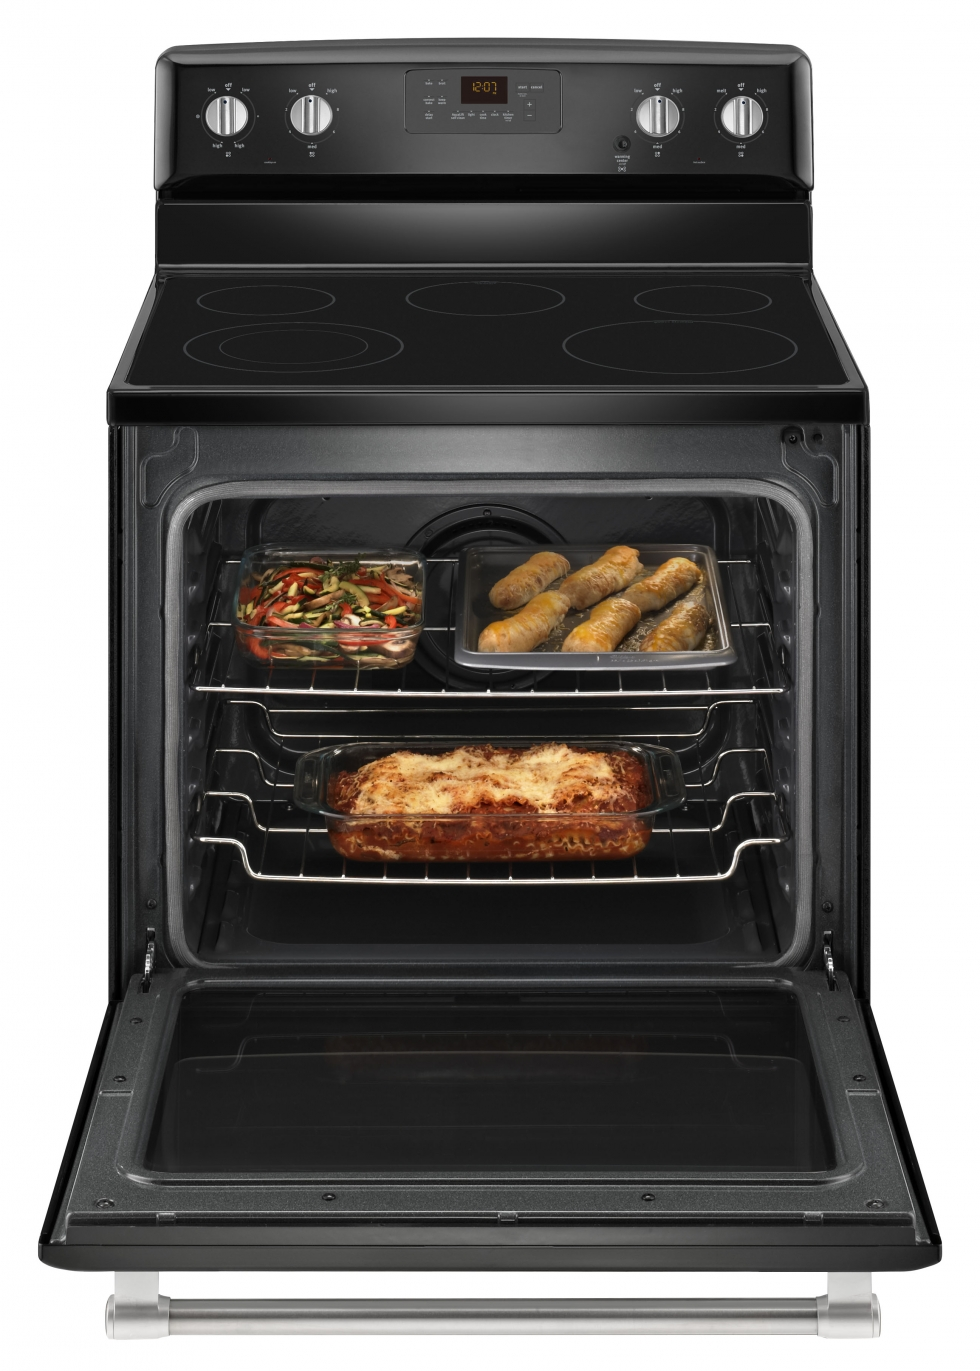 Maytag Electric RANGE WITH CONVECTION OVEN  Black with stainless